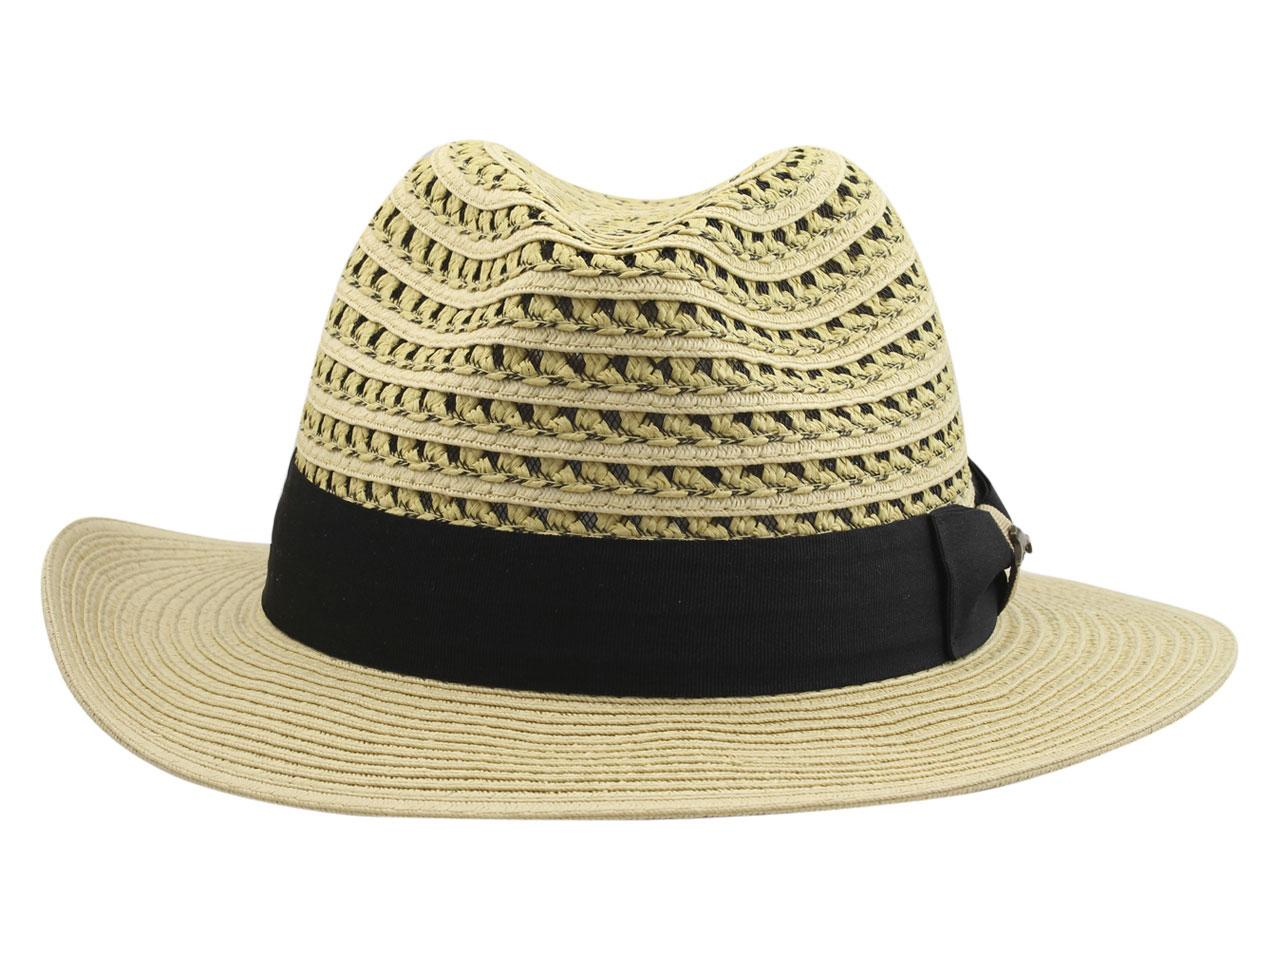 41b5094b213c5 Tommy Bahama Men s Two-Tone Safari Hat by Tommy Bahama. 1234